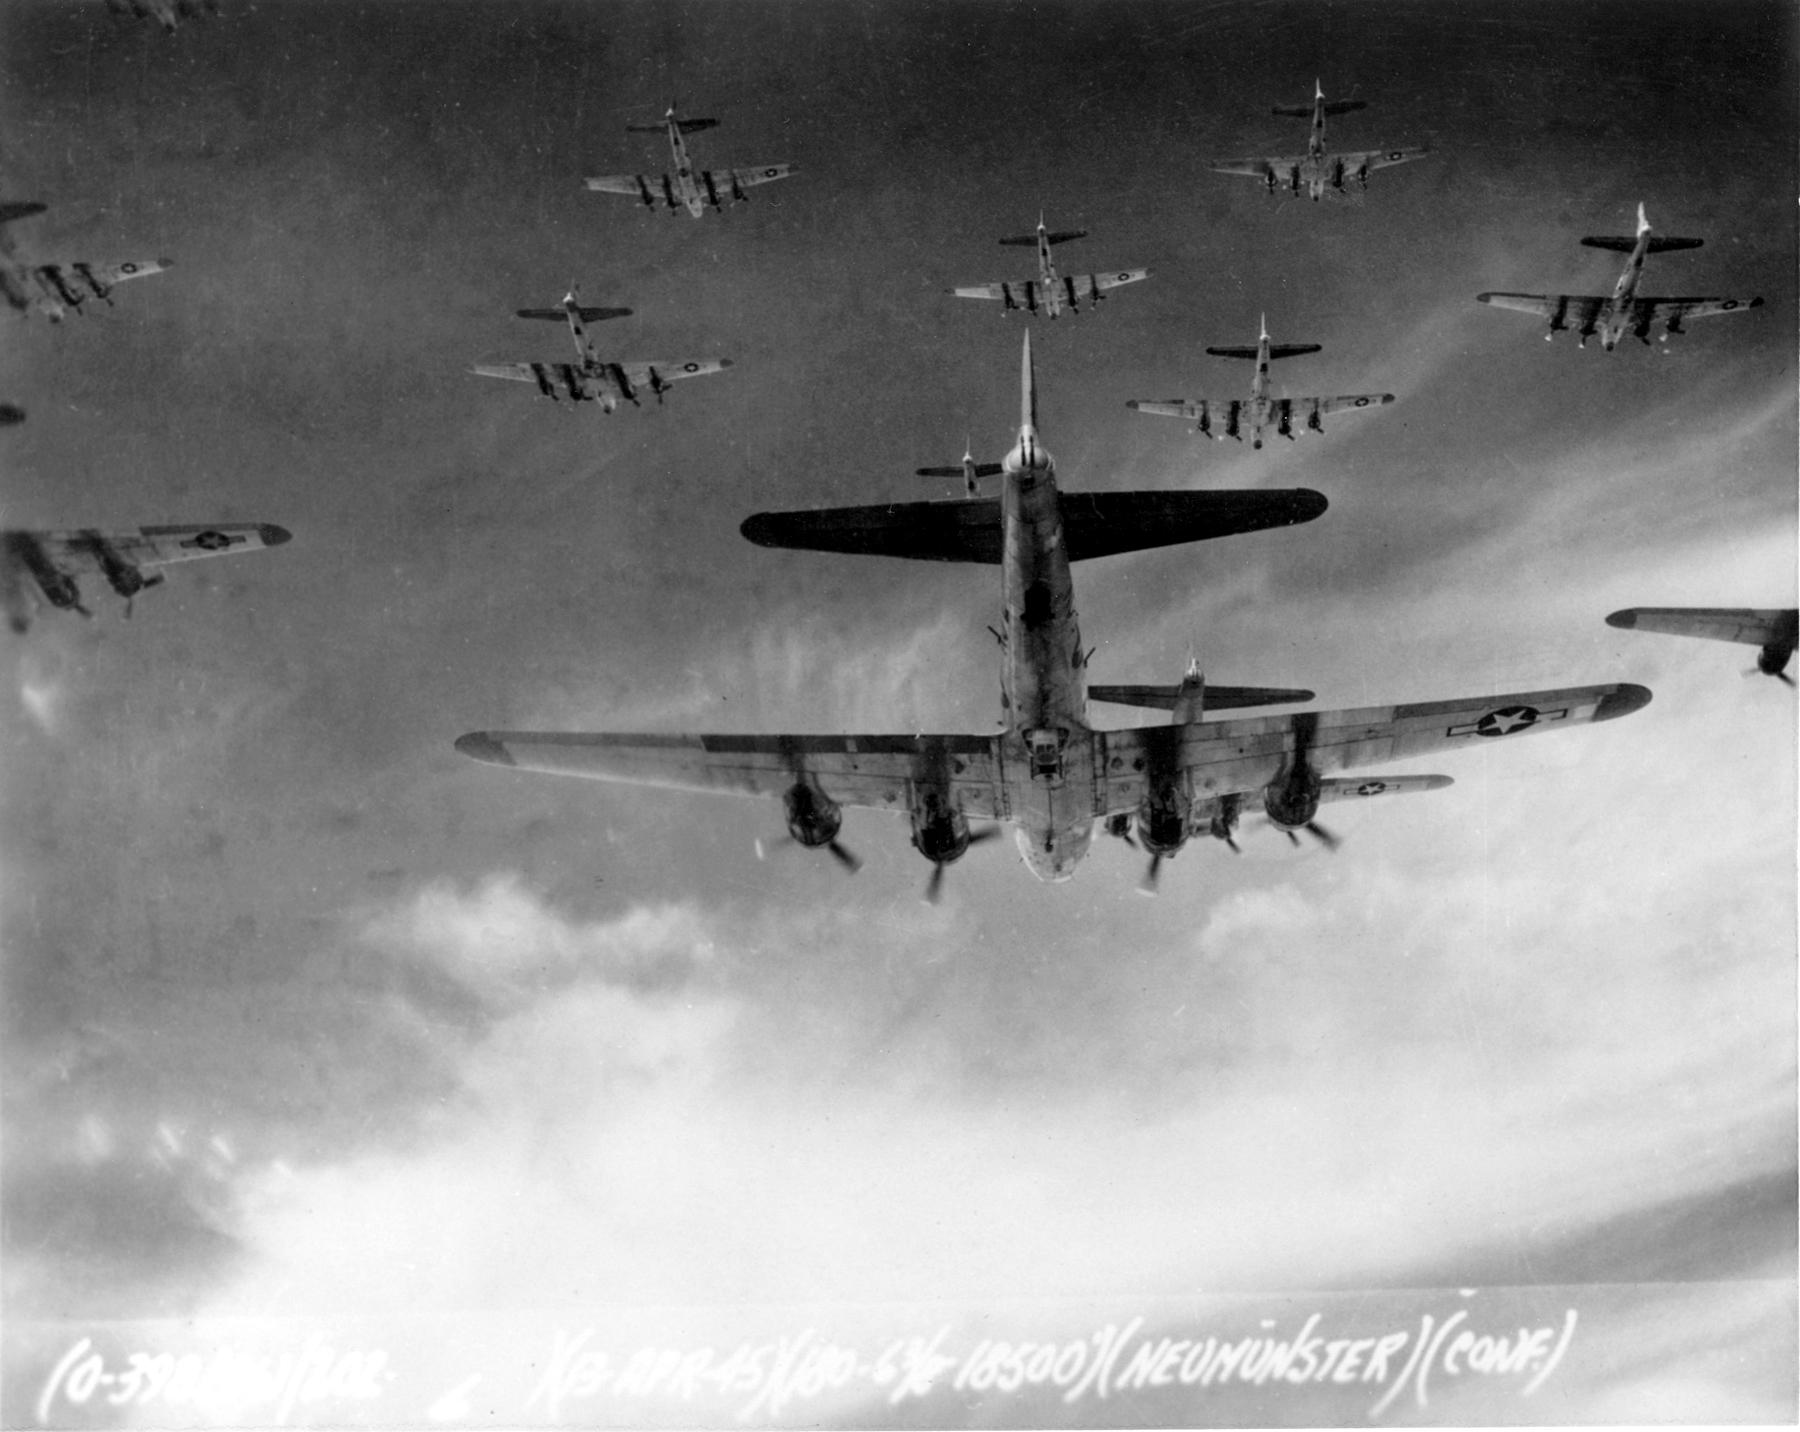 B-17 Flying Fortresses from B 17 Flying Fortress Photographs World War Ii Database